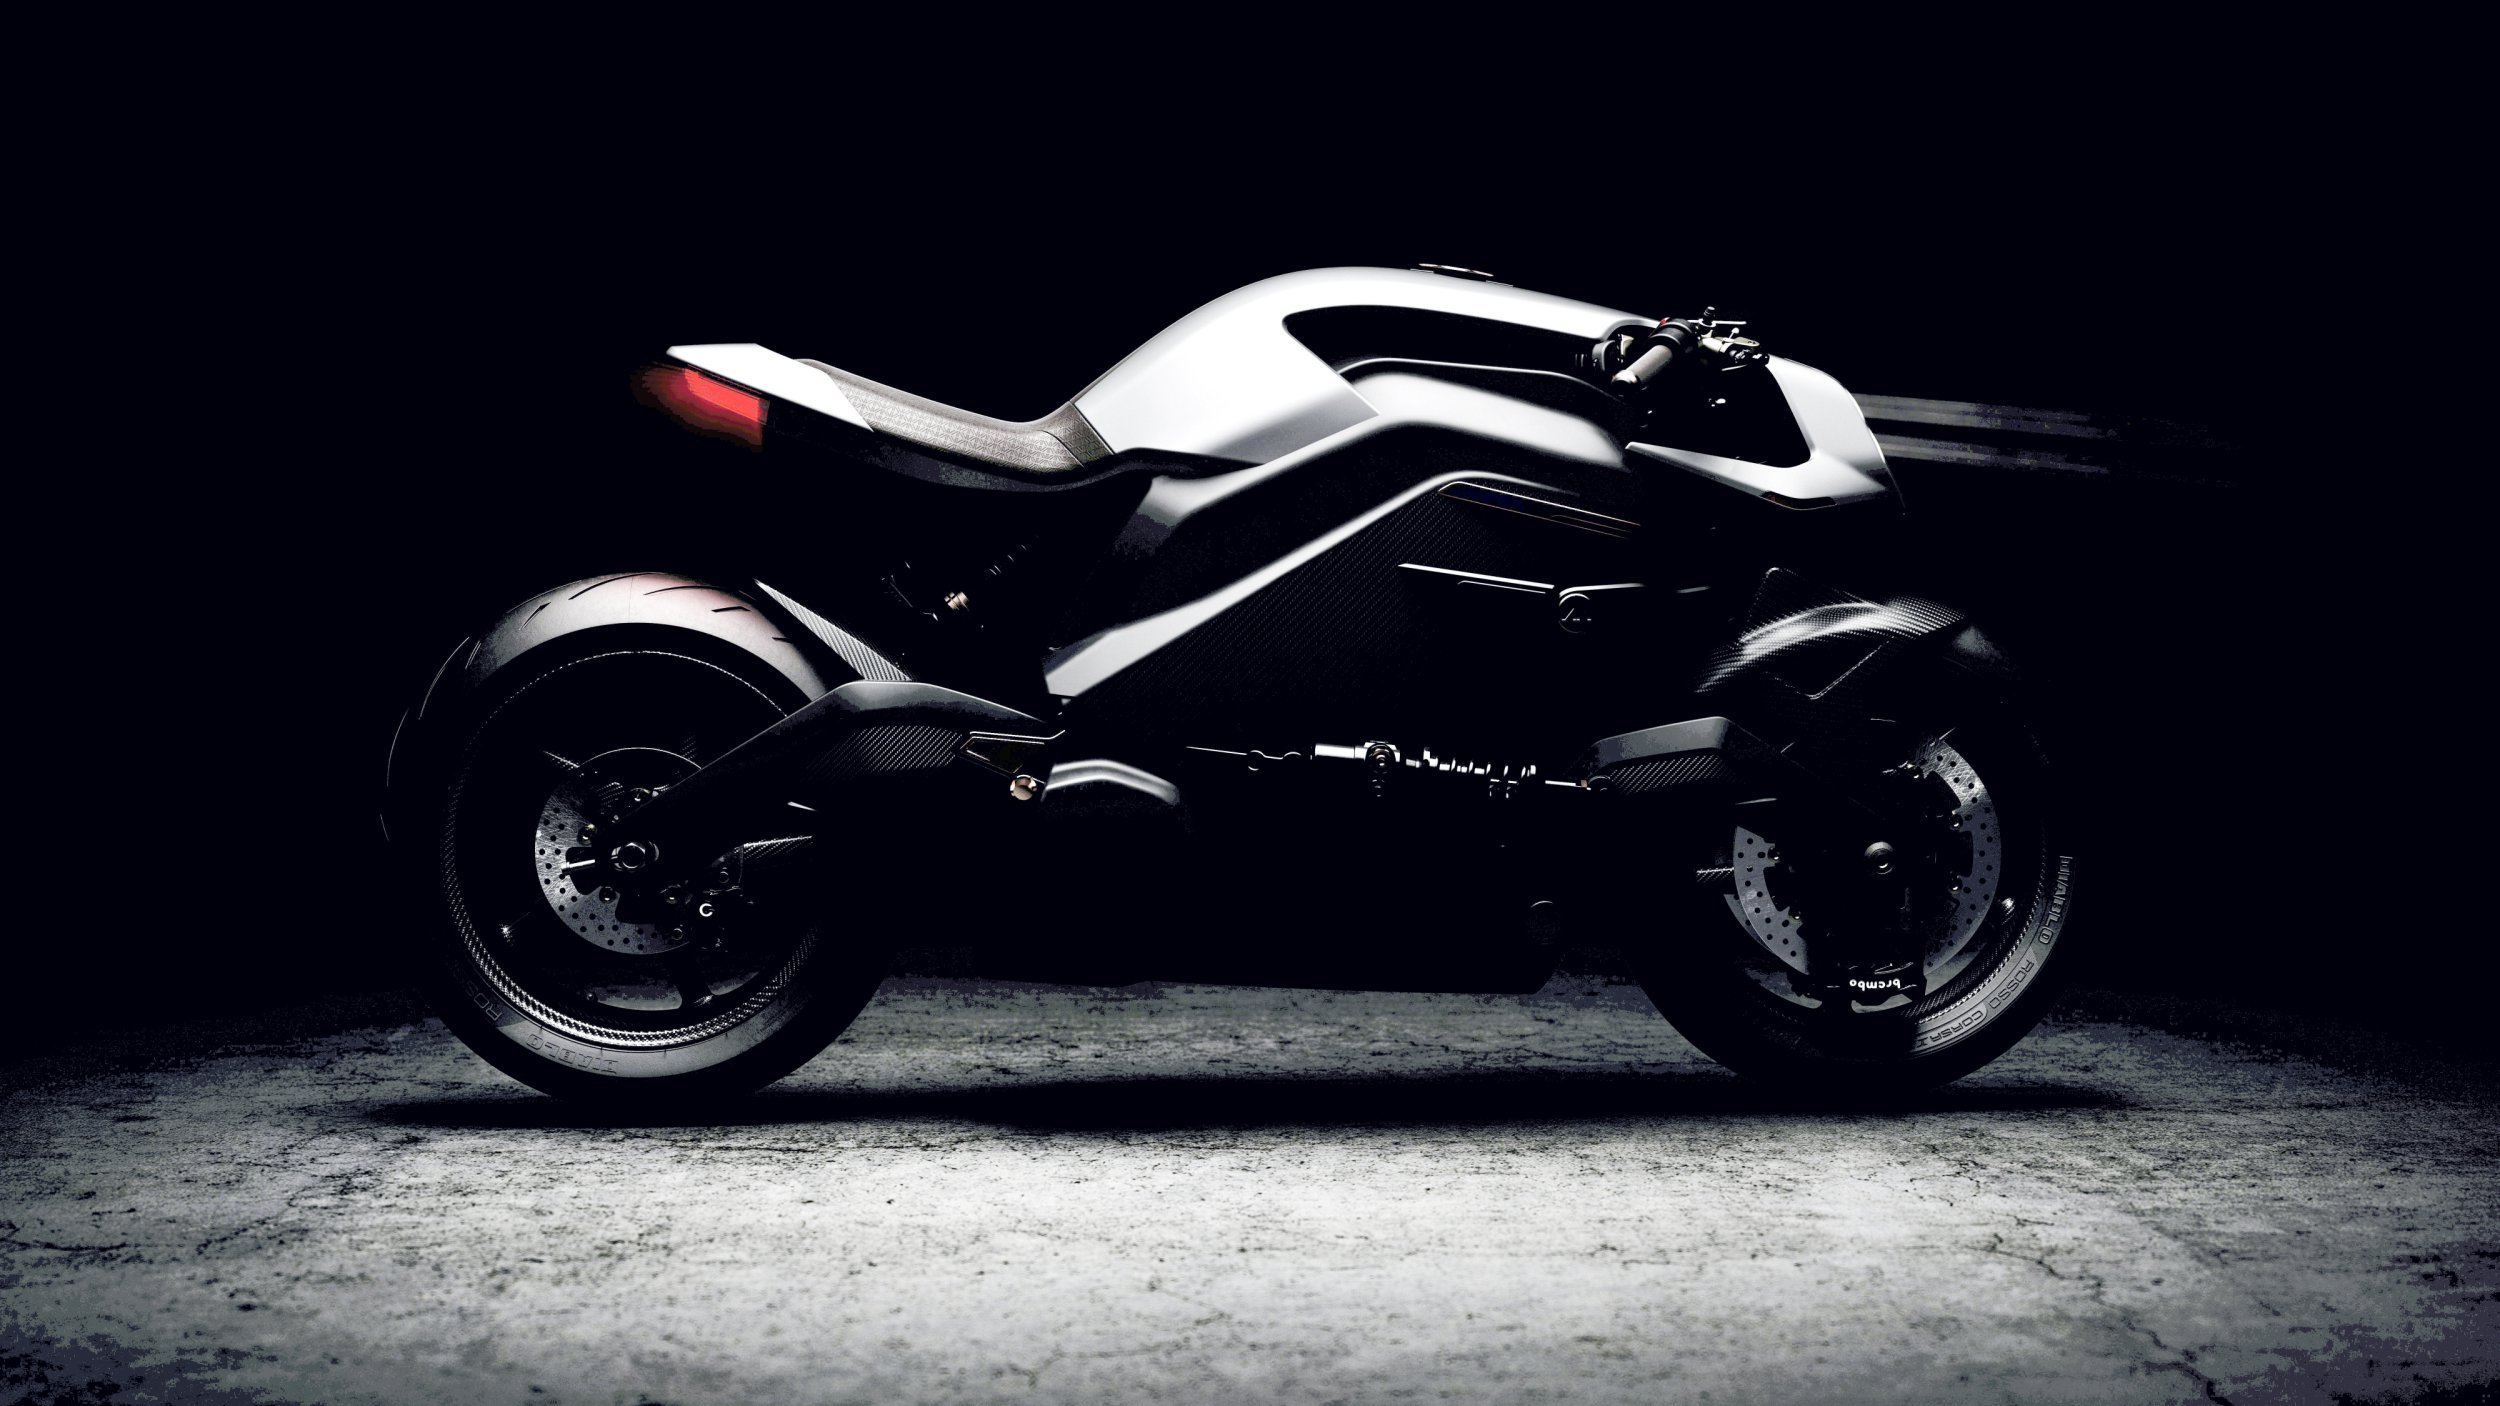 ***EMBARGO UNTIL 00:01 GMT, TUE 6TH NOV*** An electric motorcycle that comes with an Iron Man-like helmet and biker jacket that digitally connects the rider with the road has been tipped as one of the most advanced bikes ever made. See SWNS story SWBRbike; Built by a team of British engineers who have been likened to The Avengers, the futuristic design was launched at Milan???s EICMA Motorcycle show today (Tuesday 6th) and features a Human Machine Interface (HMI) that has been taken to another level. The Arc Vector utilises exotic materials, thoroughbred componentry and cutting-edge architecture with a Heads-Up Display (HUD) helmet and intelligent biker jacket. Priced at ??90,000, it???s aimed at rakish, trailblazing and eco-conscious millionaires. It???s the first model to be produced by Arc, a team of top engineering specialists based in Coventry, the UK???s high-tech automotive heartland, who have been likened to Marvel's superhero team by the company???s founder. The Zenith helmet has been designed in collaboration with British company Hedon, with speedo, sat-nav and ancillary graphics projected onto the rider???s visor so they can keep their eyes affixed to the road, Iron Man-style. A live rear-view camera is encased in the calfskin-trimmed helmet, giving the user the ability to see what???s behind them. The bespoke jacket, called Origin, has HMI applied to the armoured ride-wear as well as audio-type haptic amplifiers, which work like a smart phone???s vibration notifications. These may vibrate to alert of a potential hazard, provide dynamic performance-based feedback, or stir the senses when on a stimulating ride. Arc???s founder Mark Truman, who is ex Jaguar Land Rover, said: ???We felt that there was more one could get out of motorcycling which no one was tapping into.